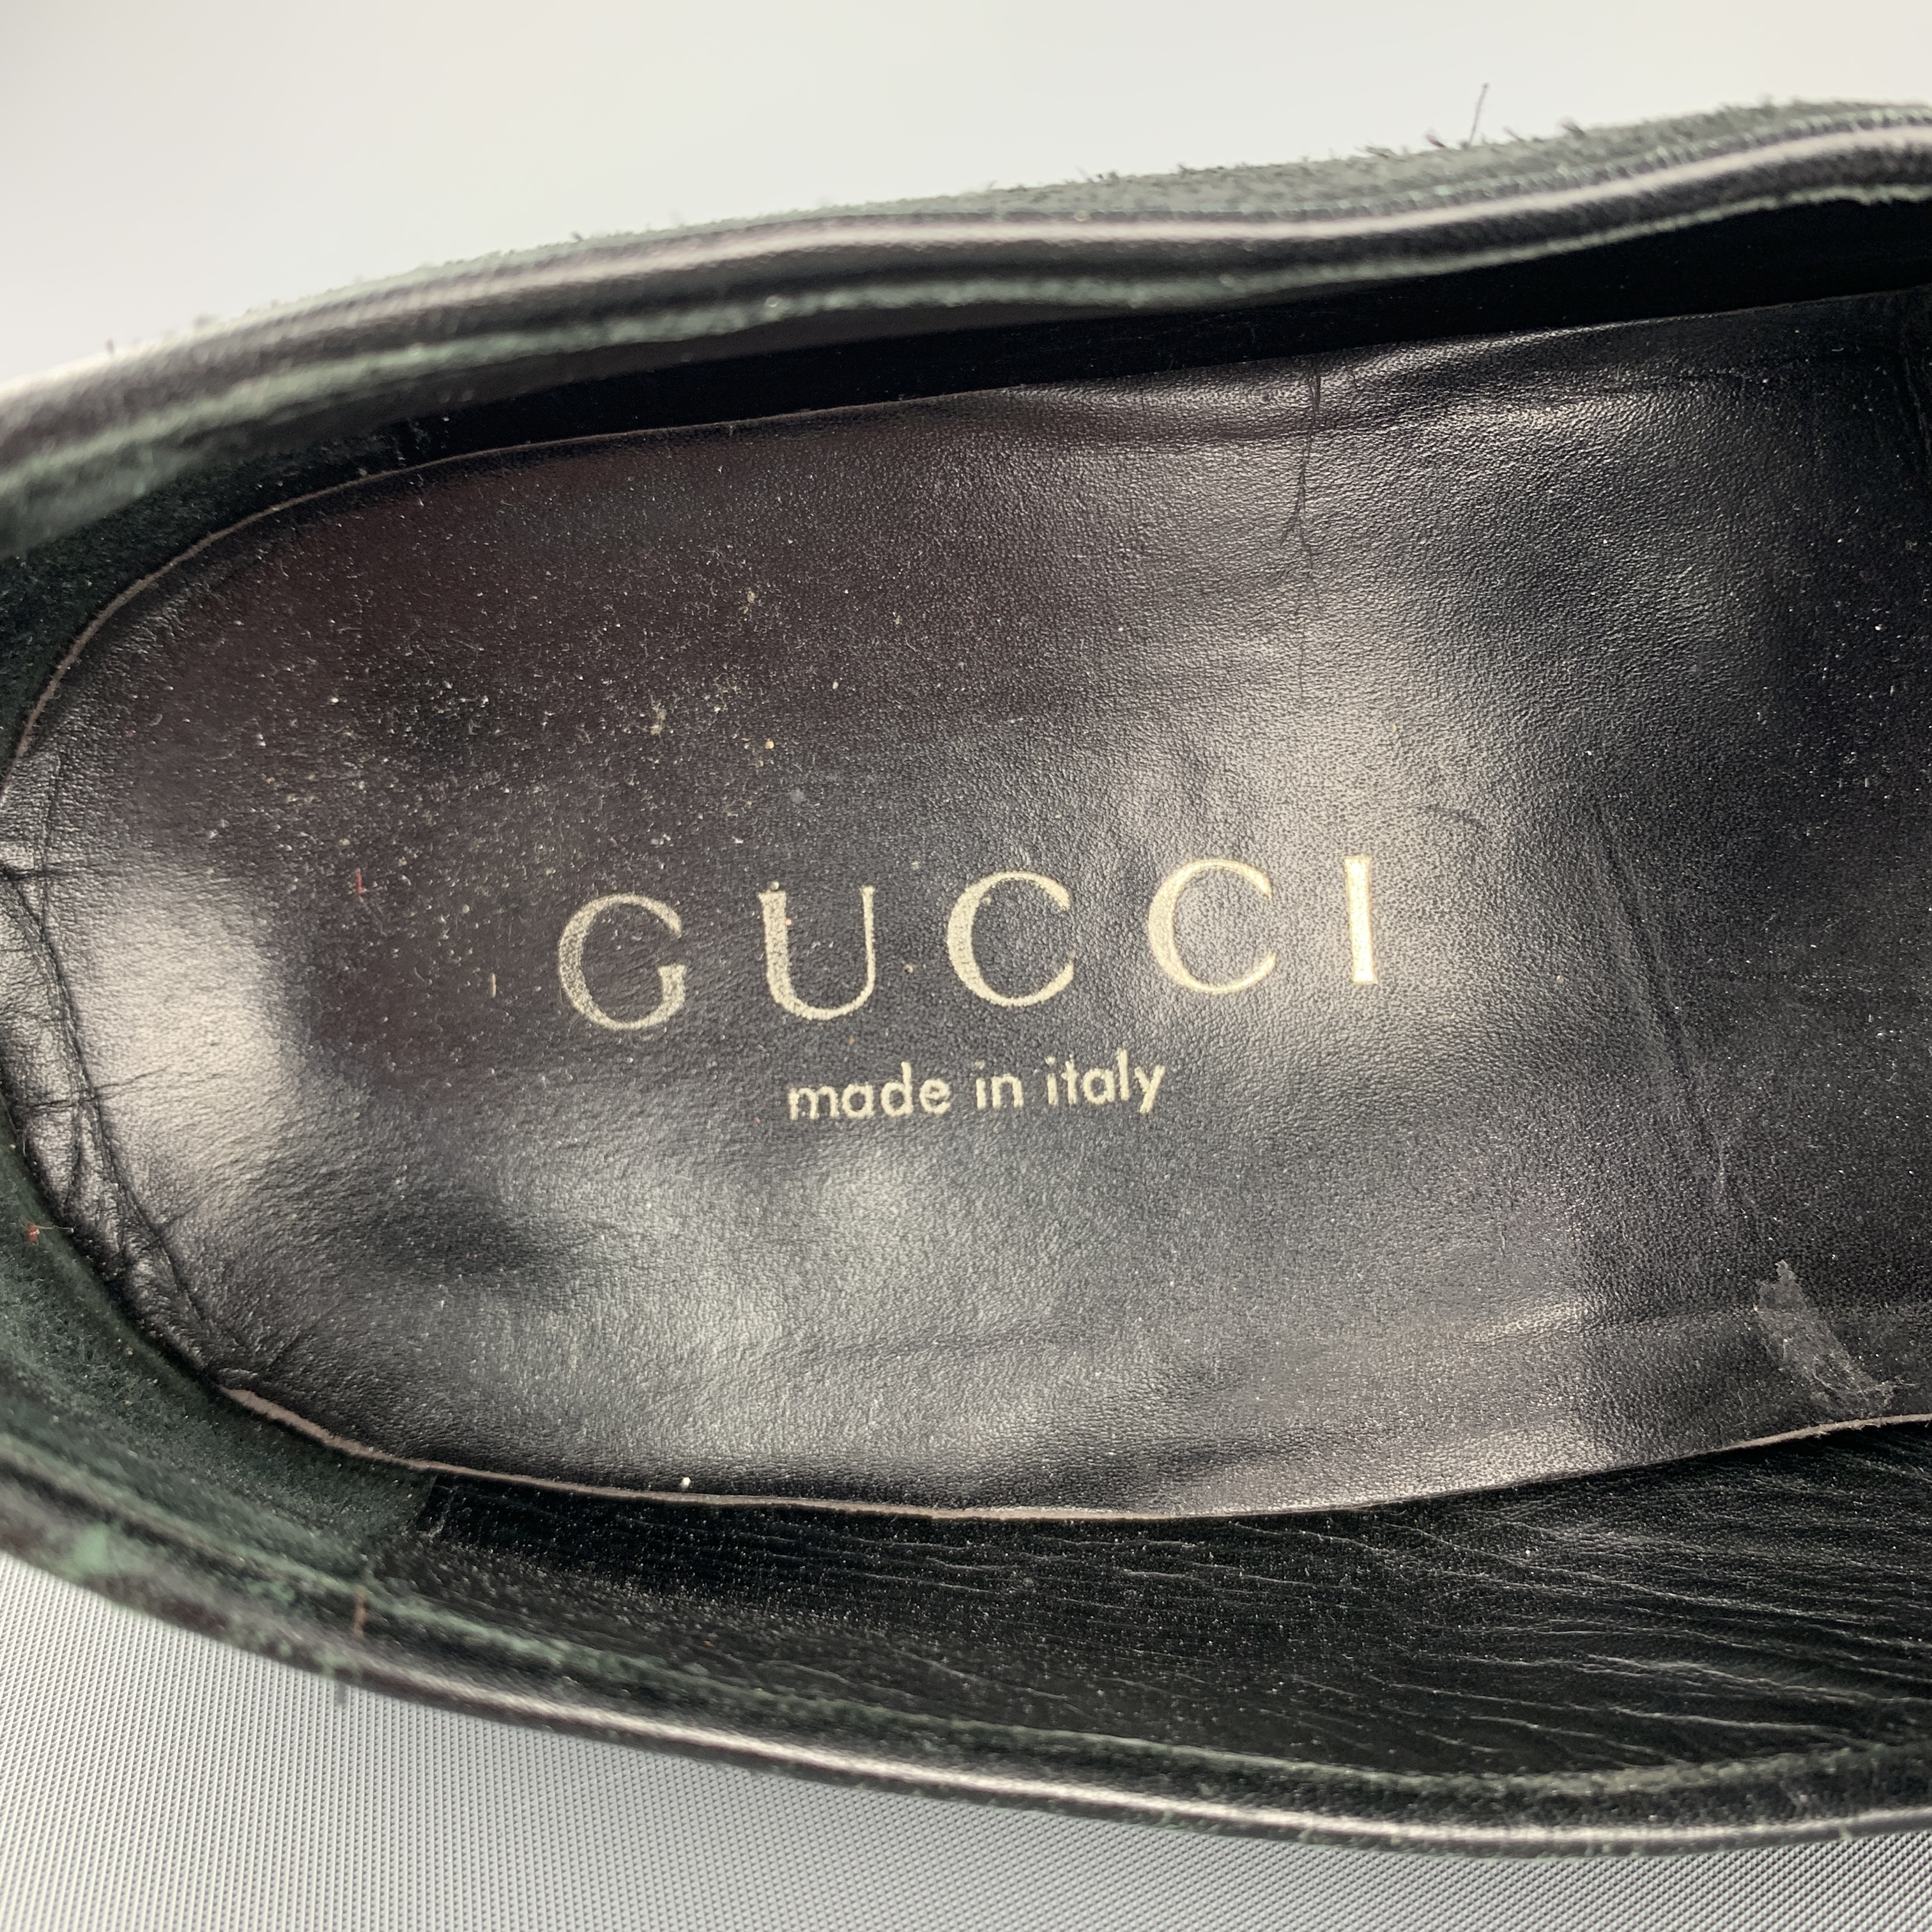 4db3dca93c4 Sui Generis Designer Consignment SAN FRANCISCO S FAVORITE DESIGNER  CONSIGNMENT STORES AND ONLINE SHOP. GUCCI Size 8 Black Solid Slip On Loafers